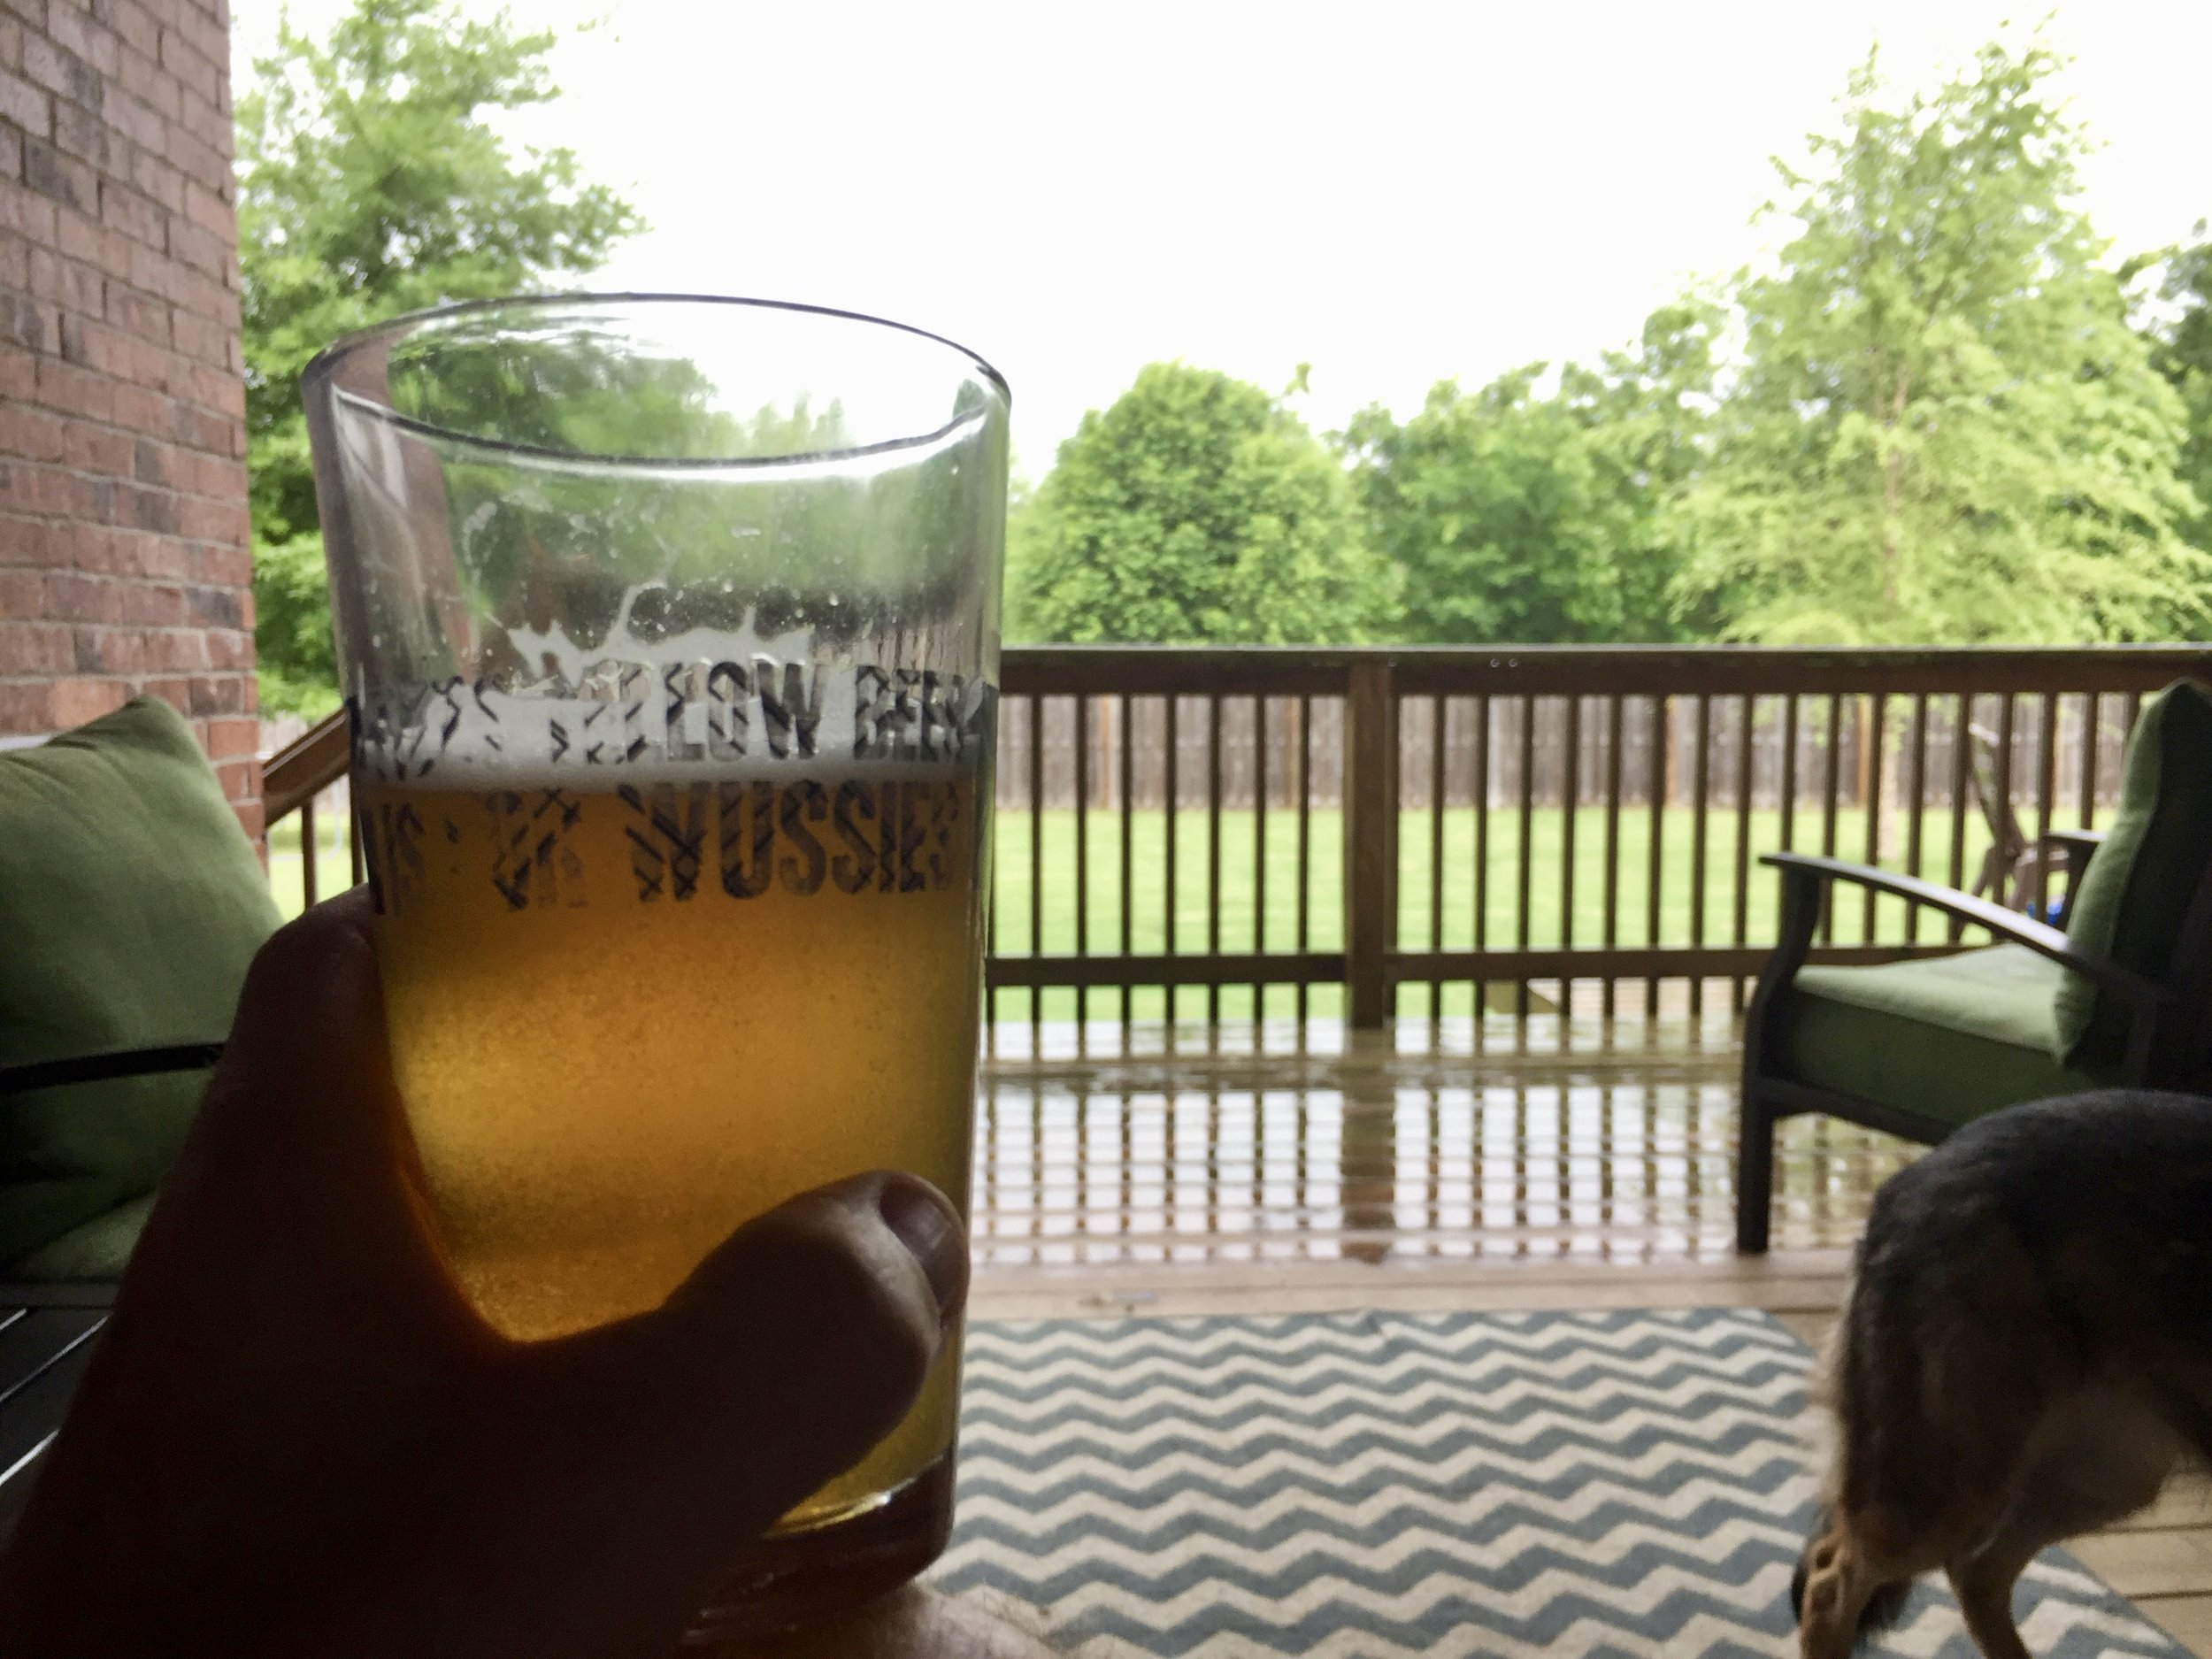 Drinking beer while watching an Arkansas thunderstorm is on my list of favorite things to do.